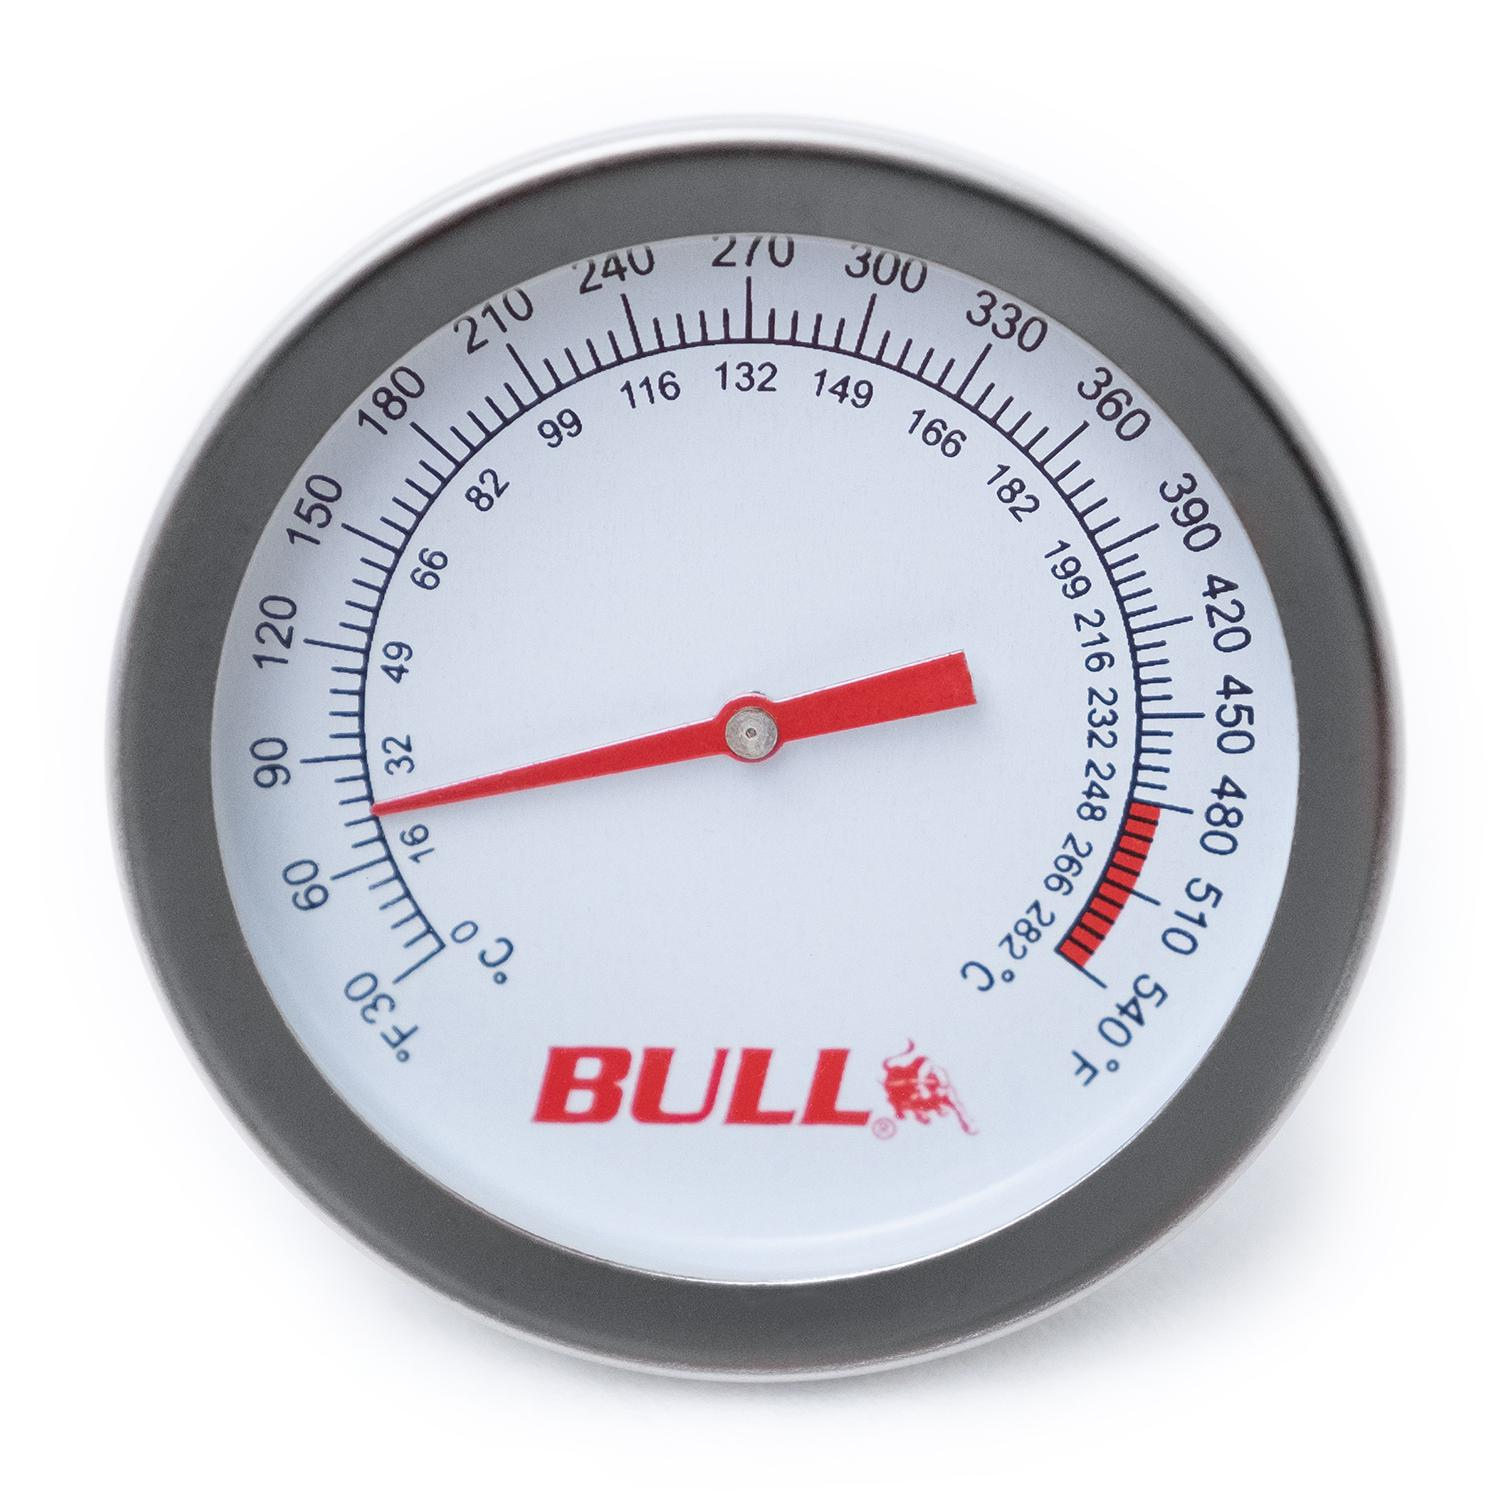 Bull Grill Replacement Temperature Gauge - 16509